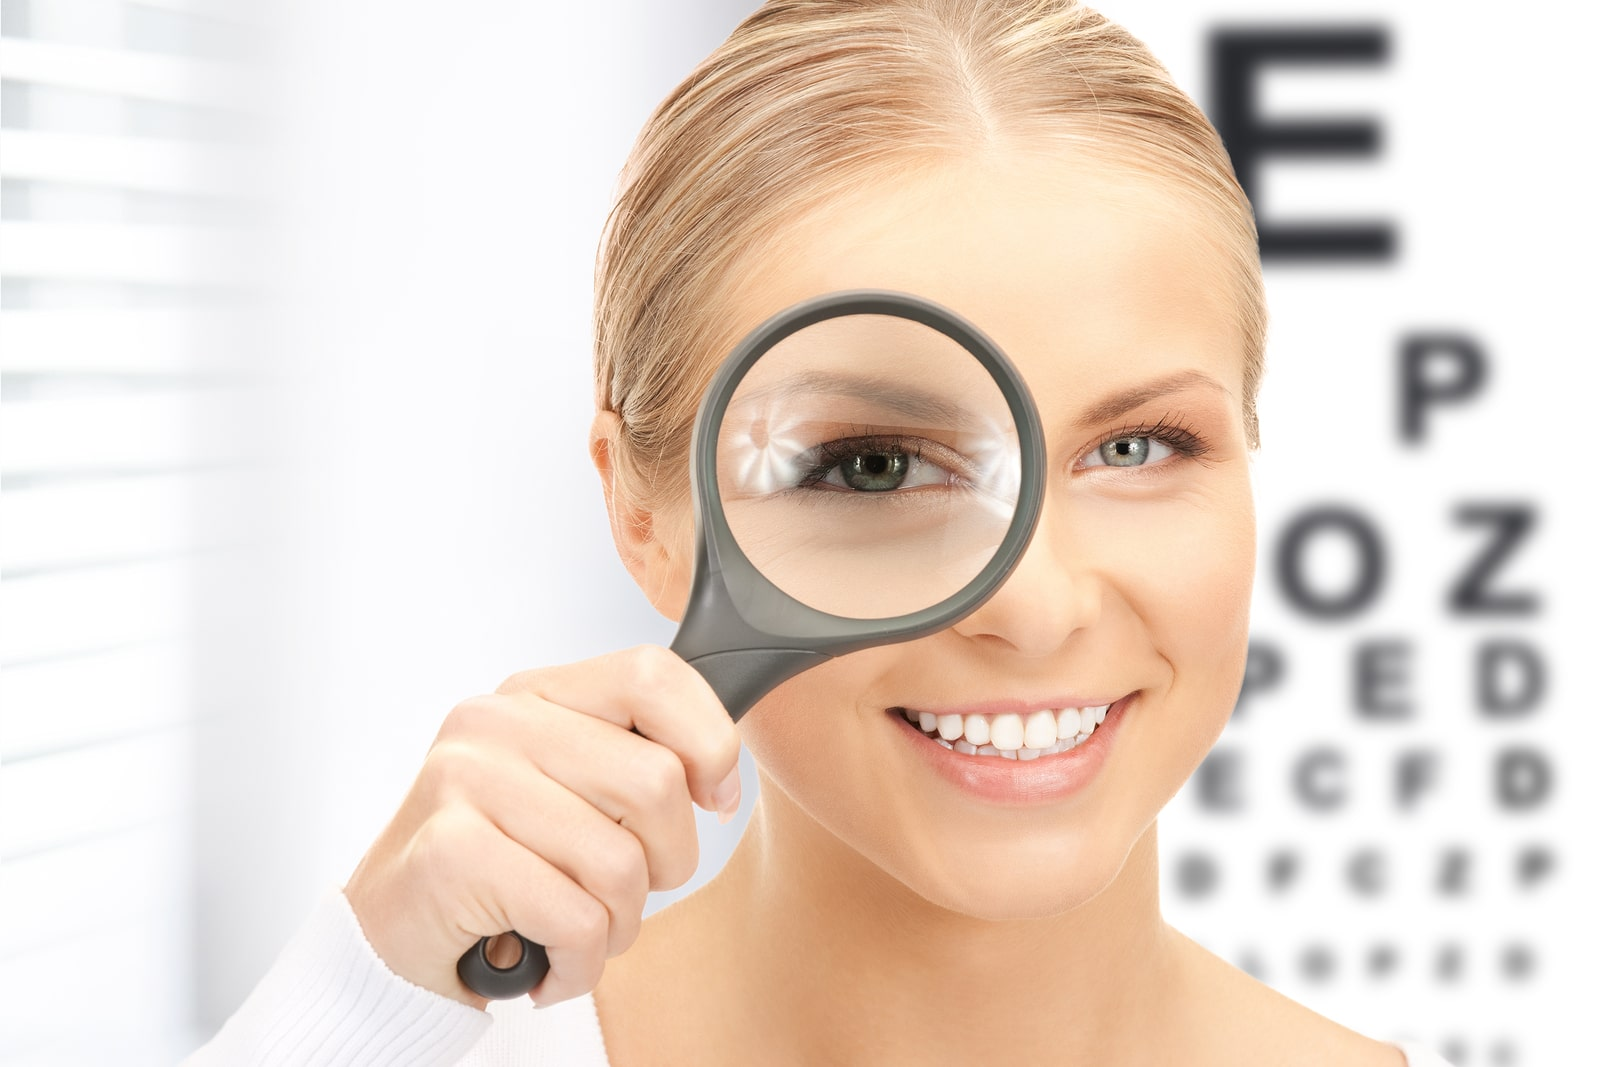 If you are in need of eye care services of any type, give Bogey Hills Vision Center in Saint Charles a call to set up your eye exam appointment with our optometrists. Call us at 636-946-1176 today.